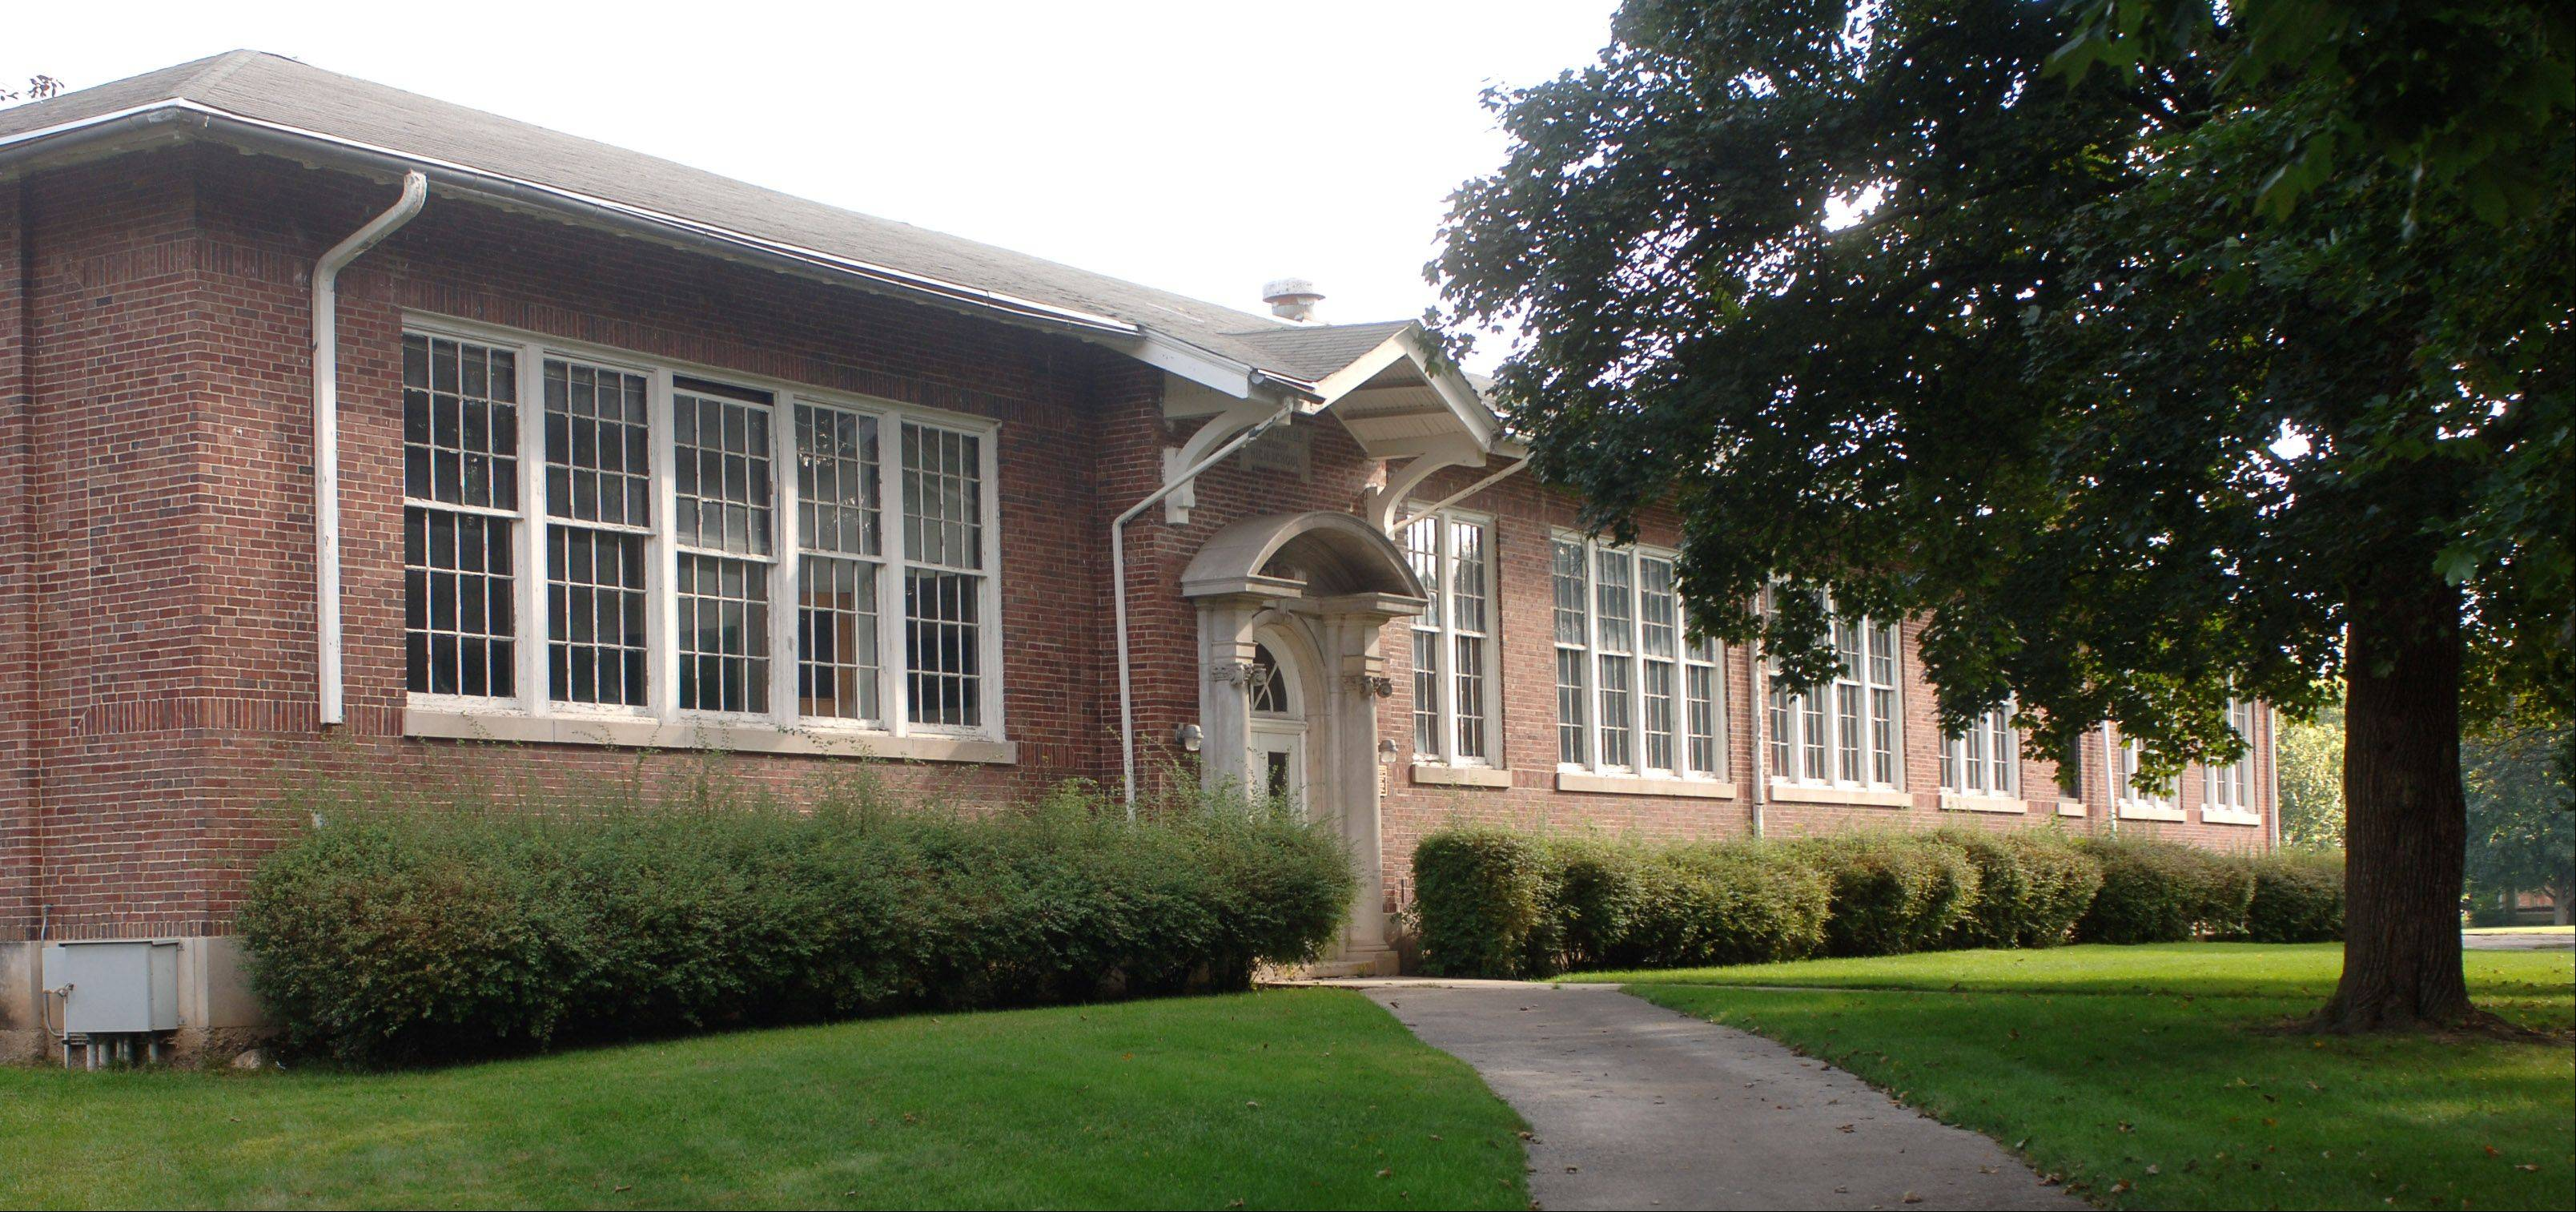 Voters could decide fate of former Libertyville High